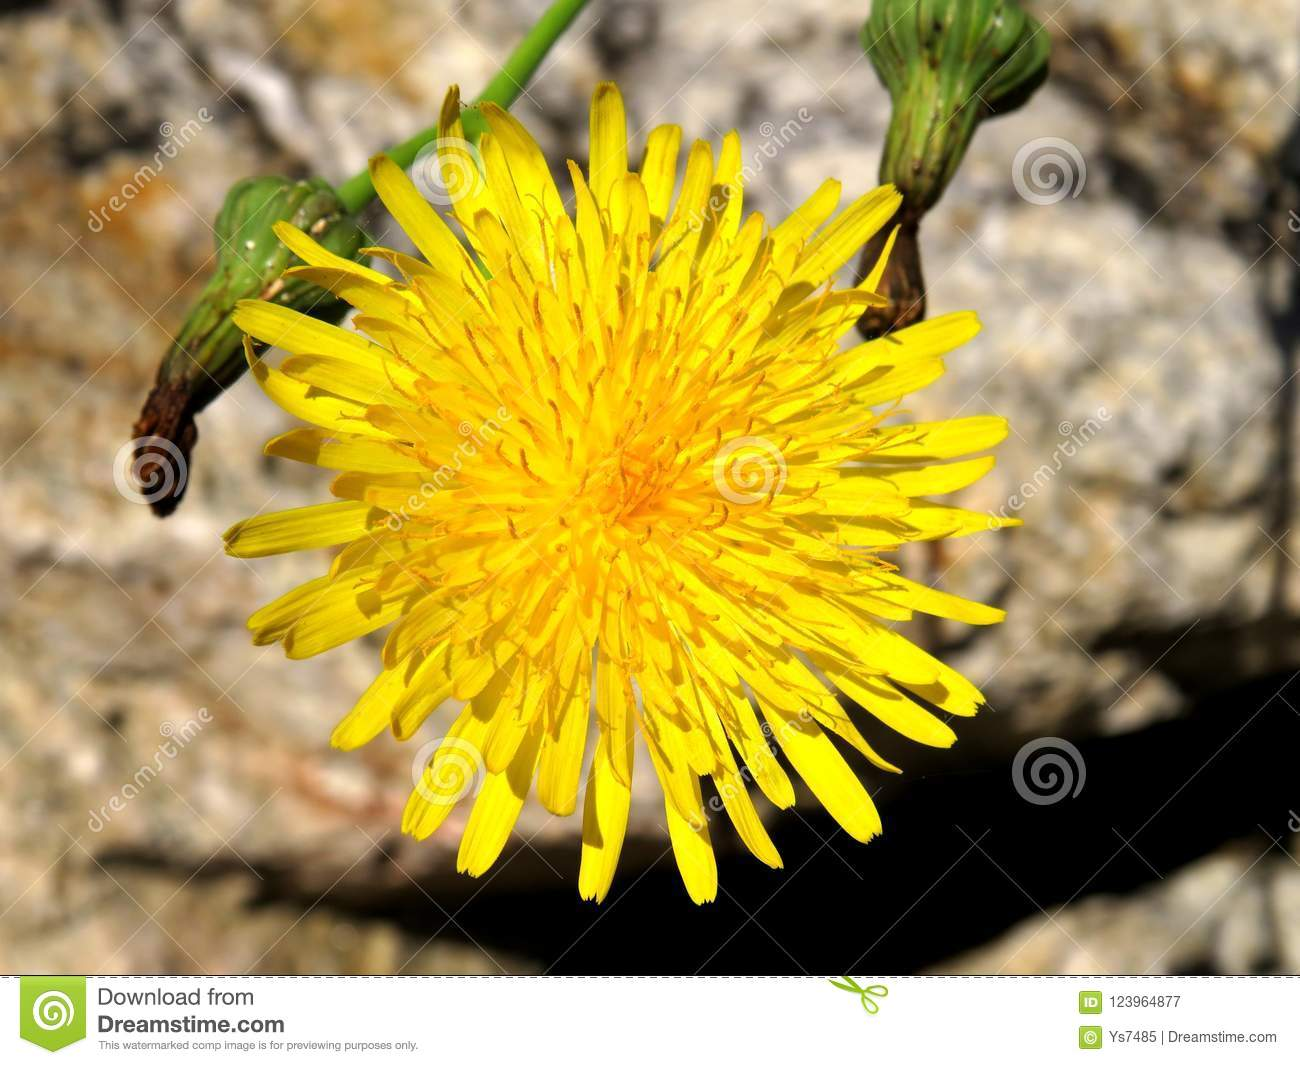 Yellow flower with many thin petals closeup stock image image of download yellow flower with many thin petals closeup stock image image of outdoor sunny mightylinksfo